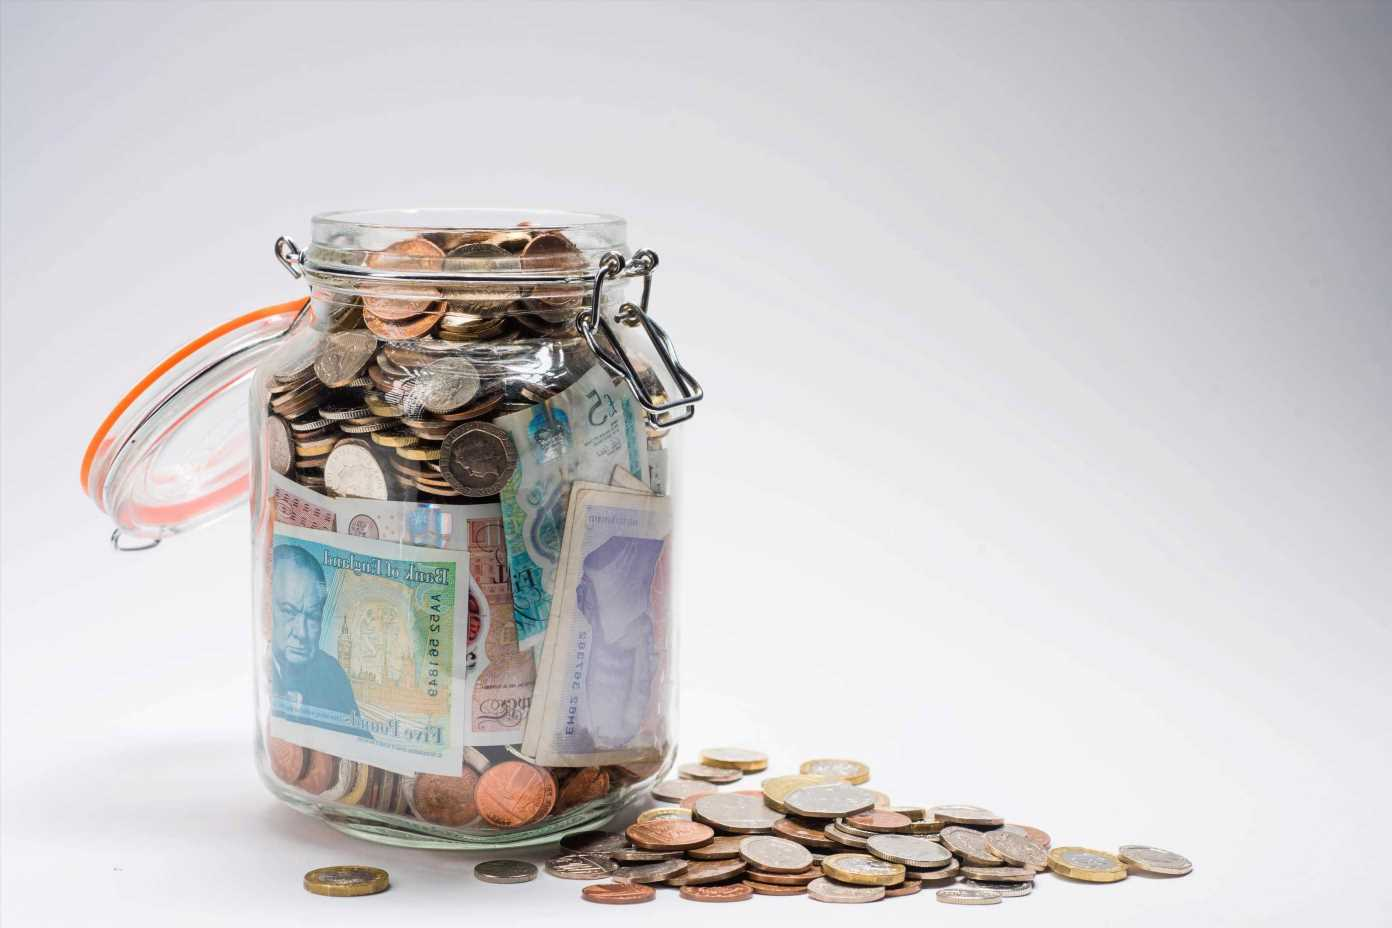 Brits reveal their top 35 quirky money saving hacks